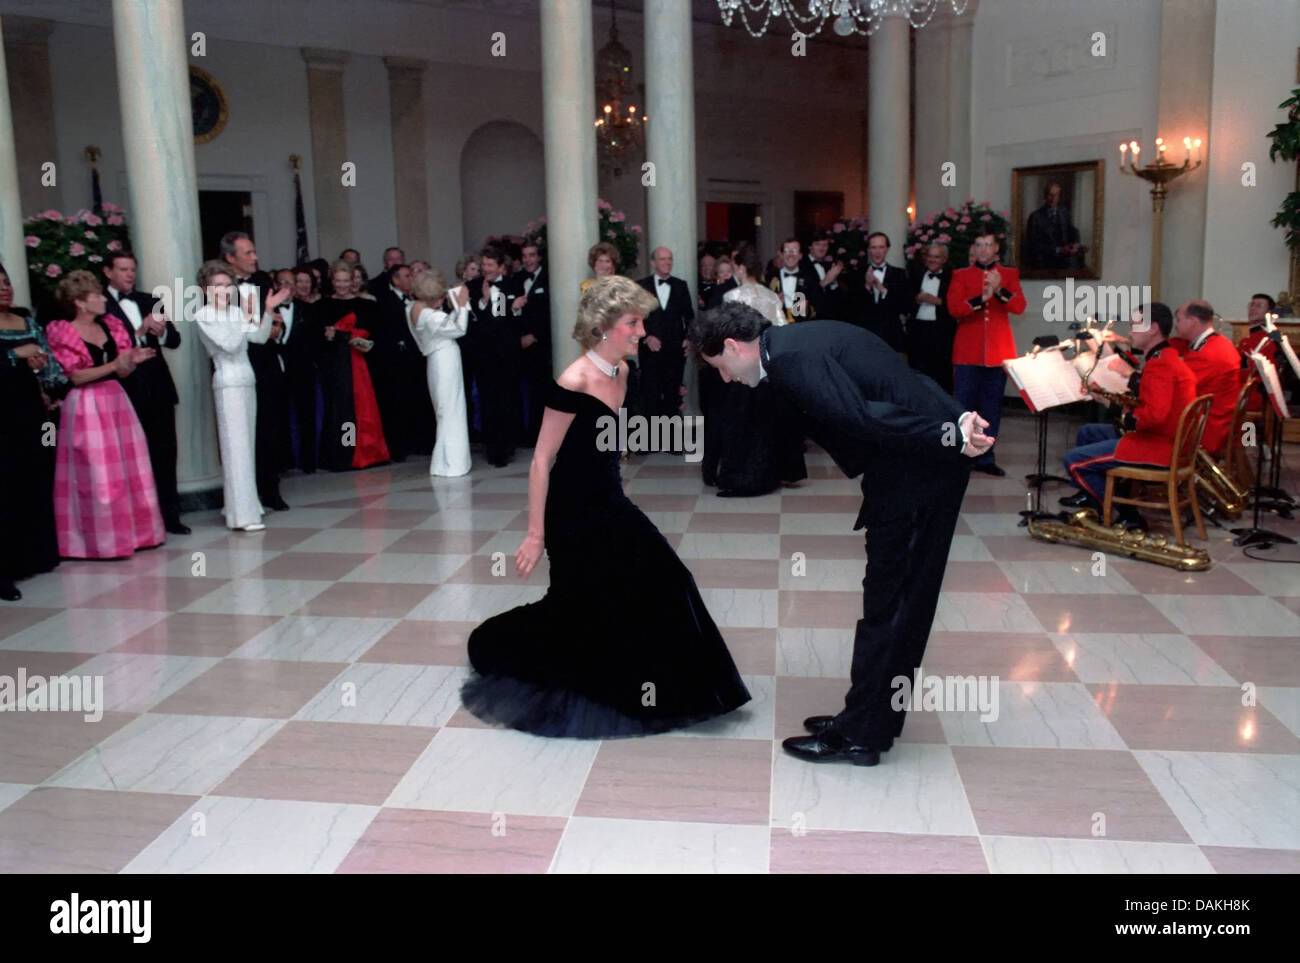 Actor John Travolta bows to Diana, Princess of Wales after their dance during a White House Gala Dinner November - Stock Image